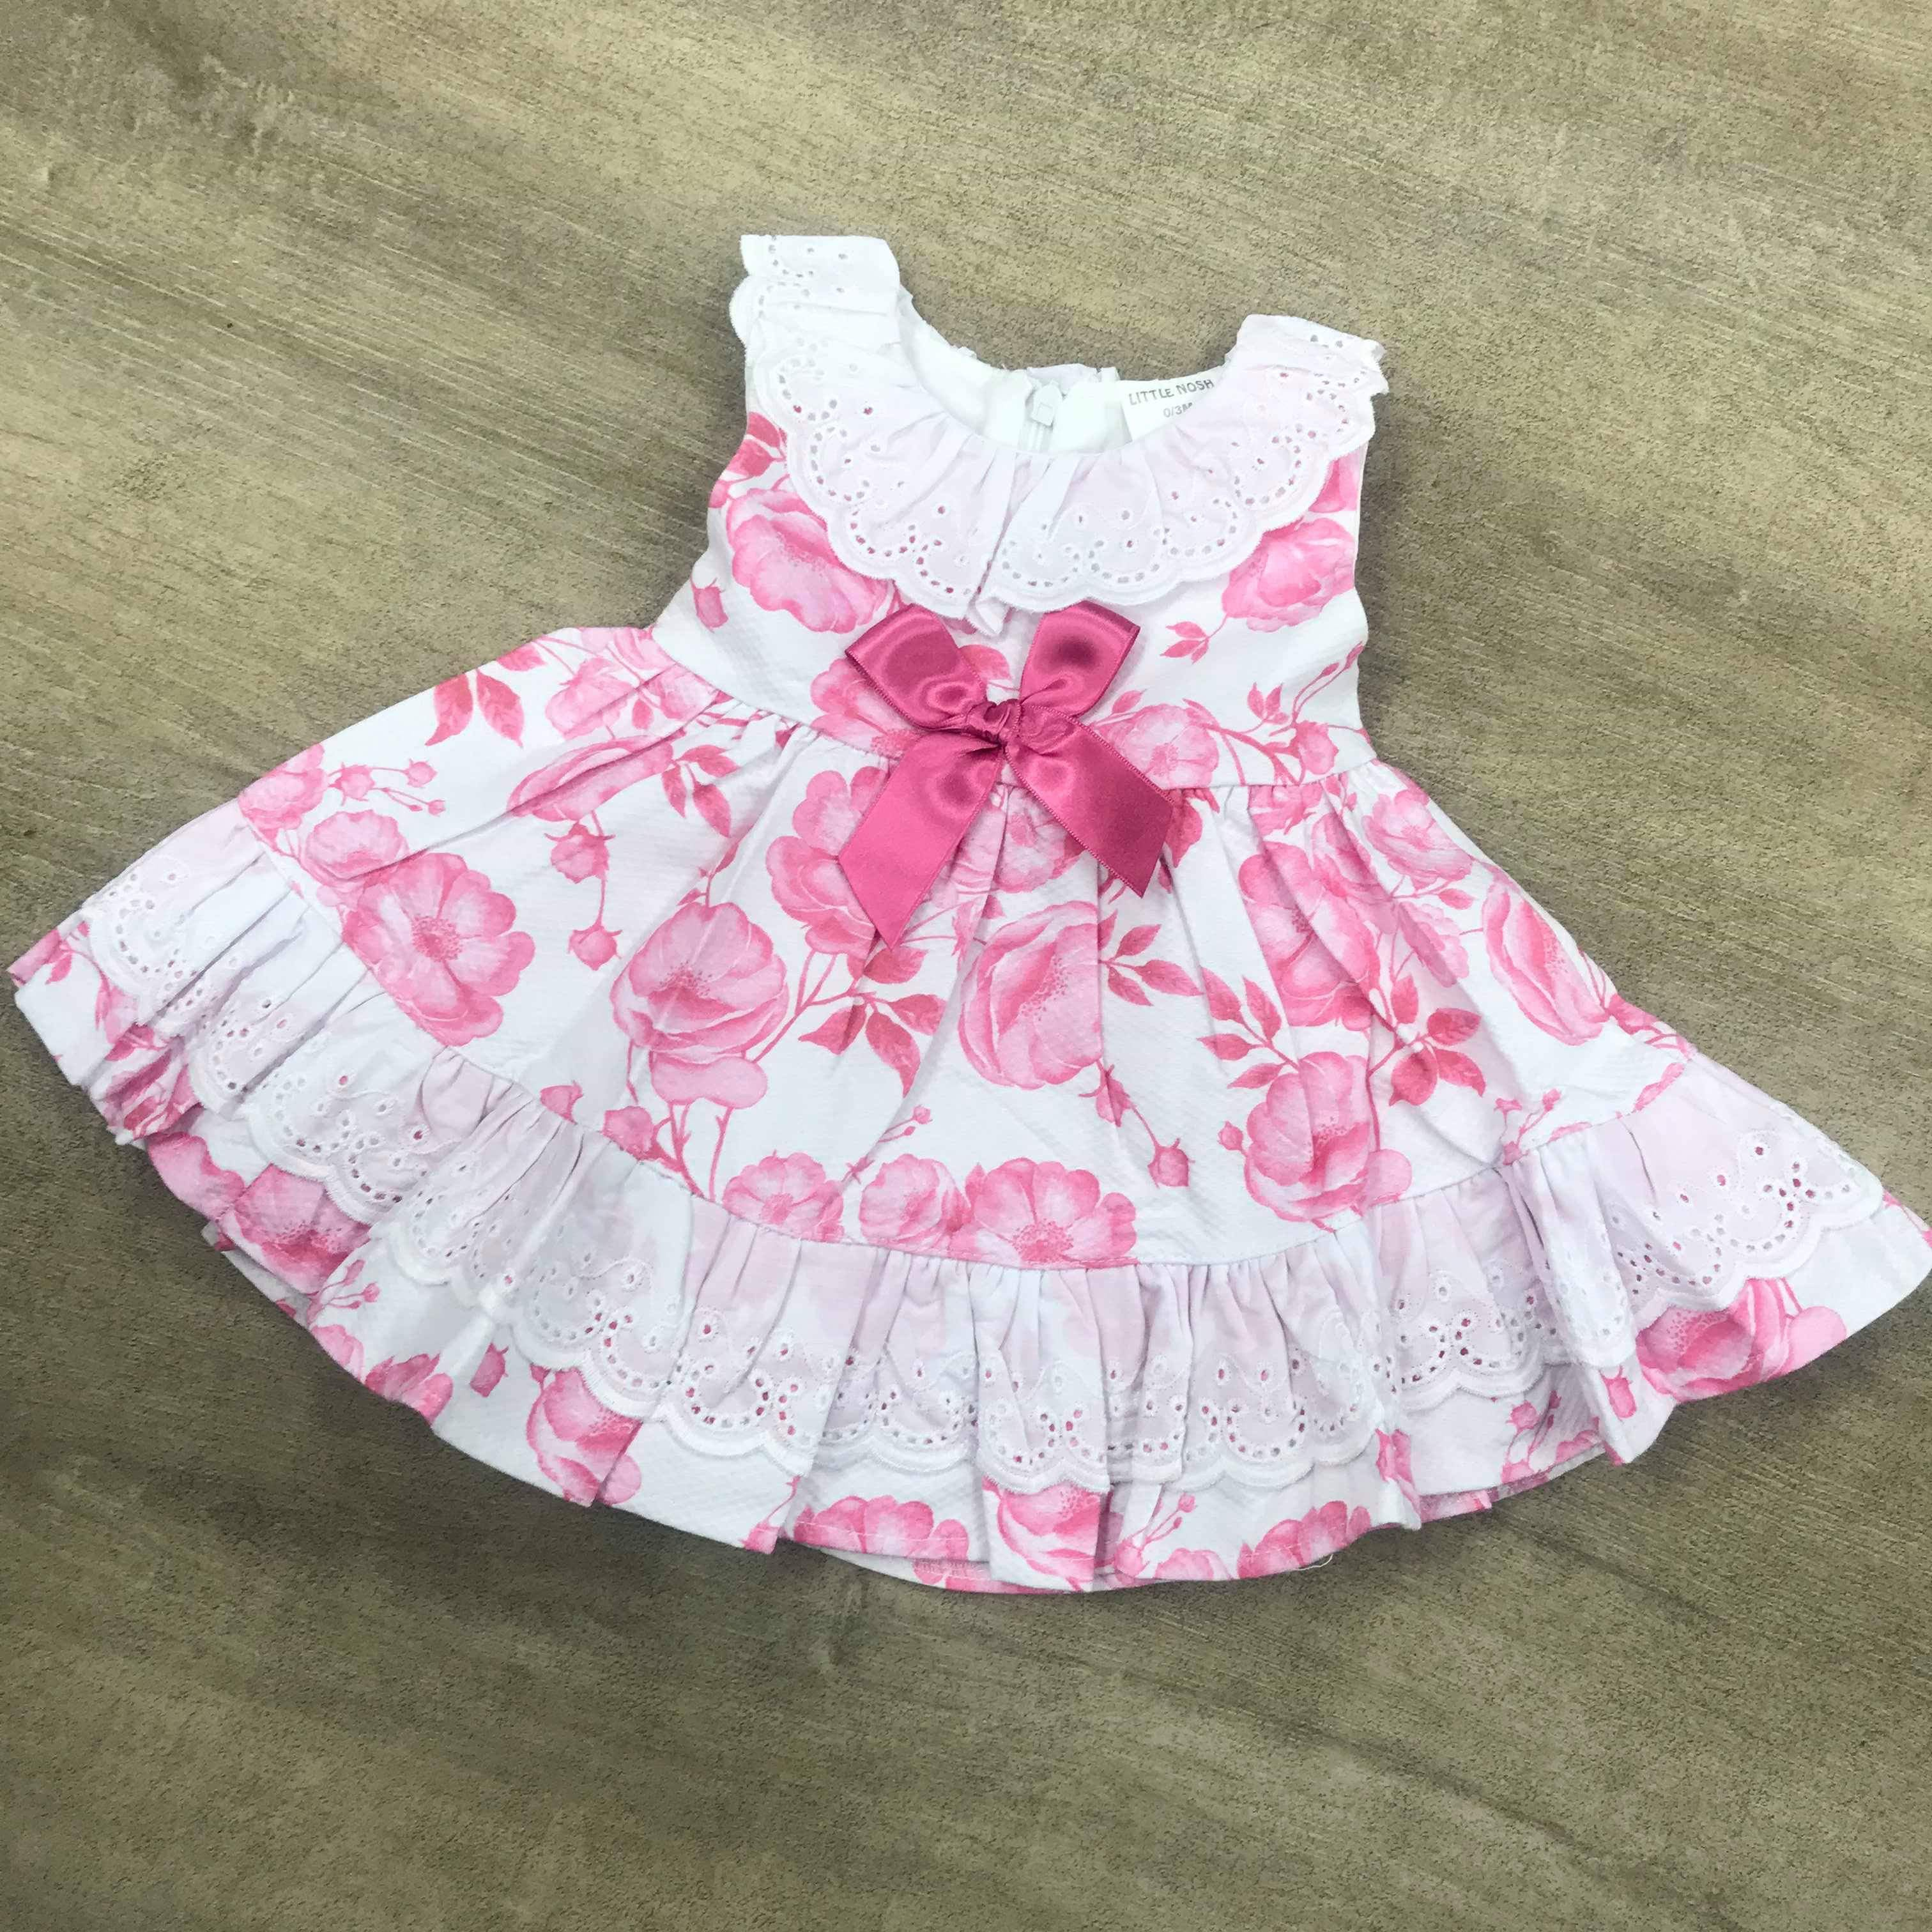 Spanish Flower Dress Pink